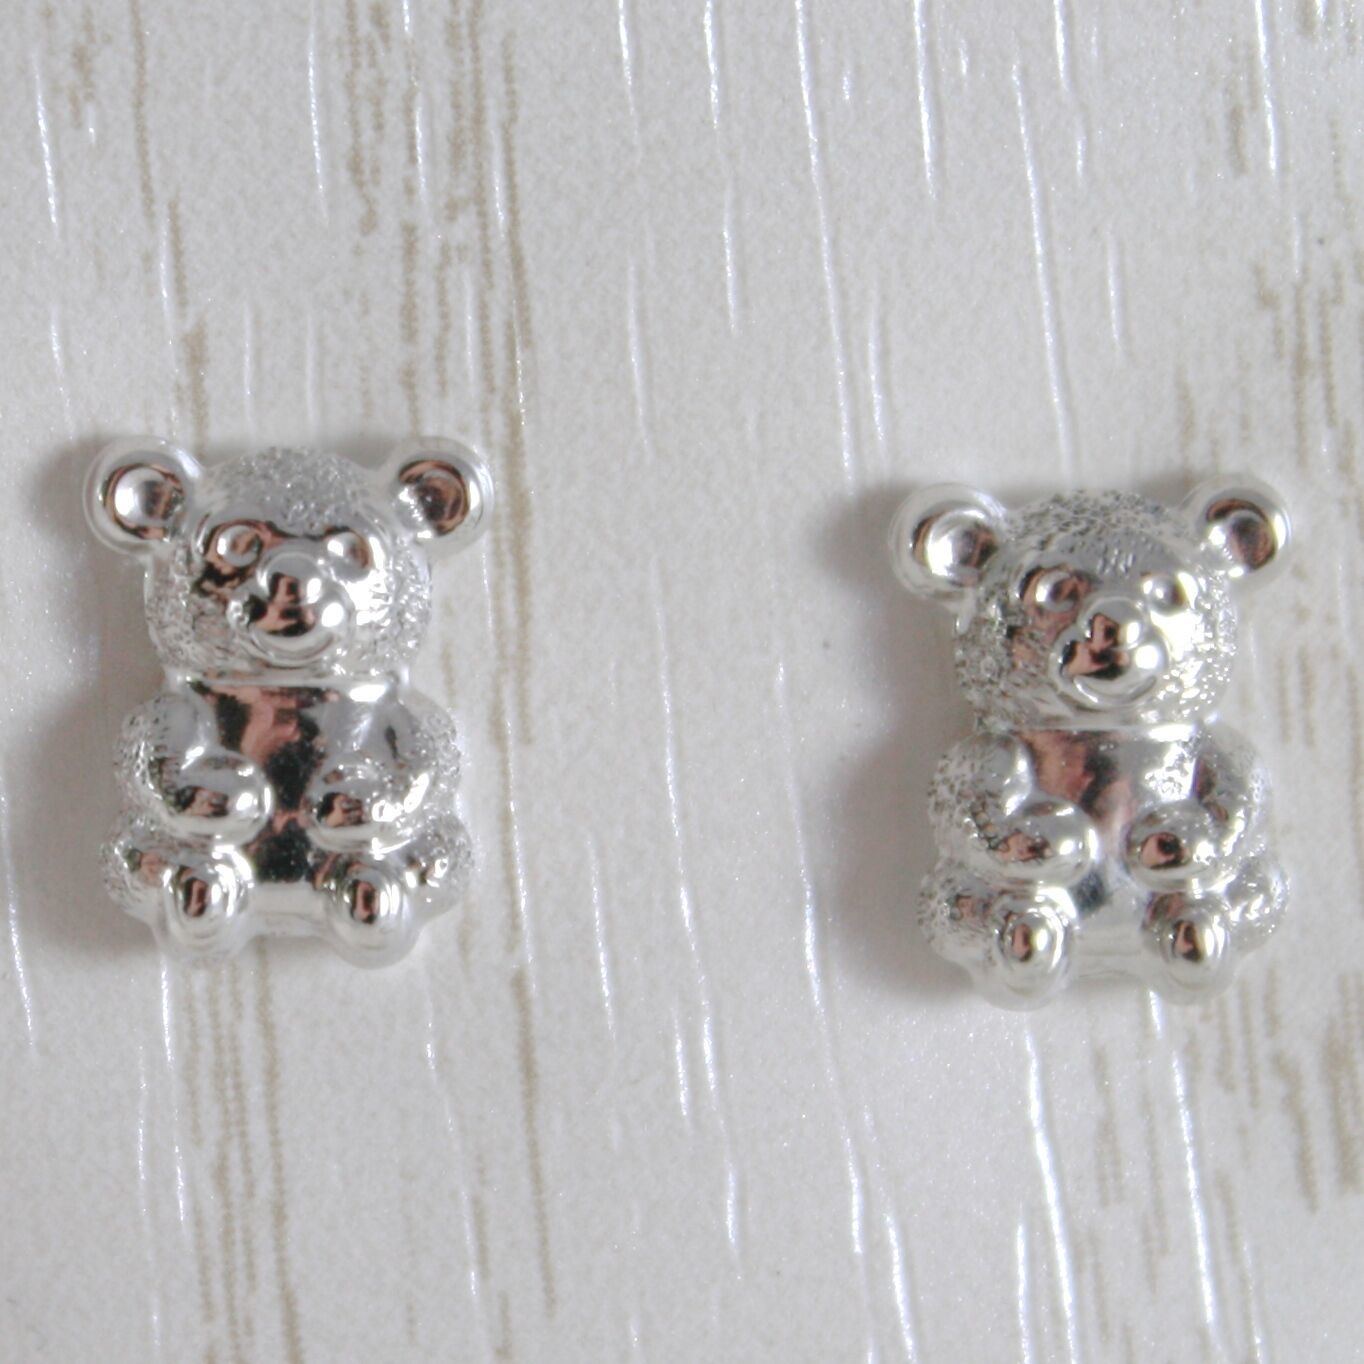 WHITE GOLD EARRINGS 750 18K FOR GIRL, BEARS SATIN, LENGTH 1.0 CM